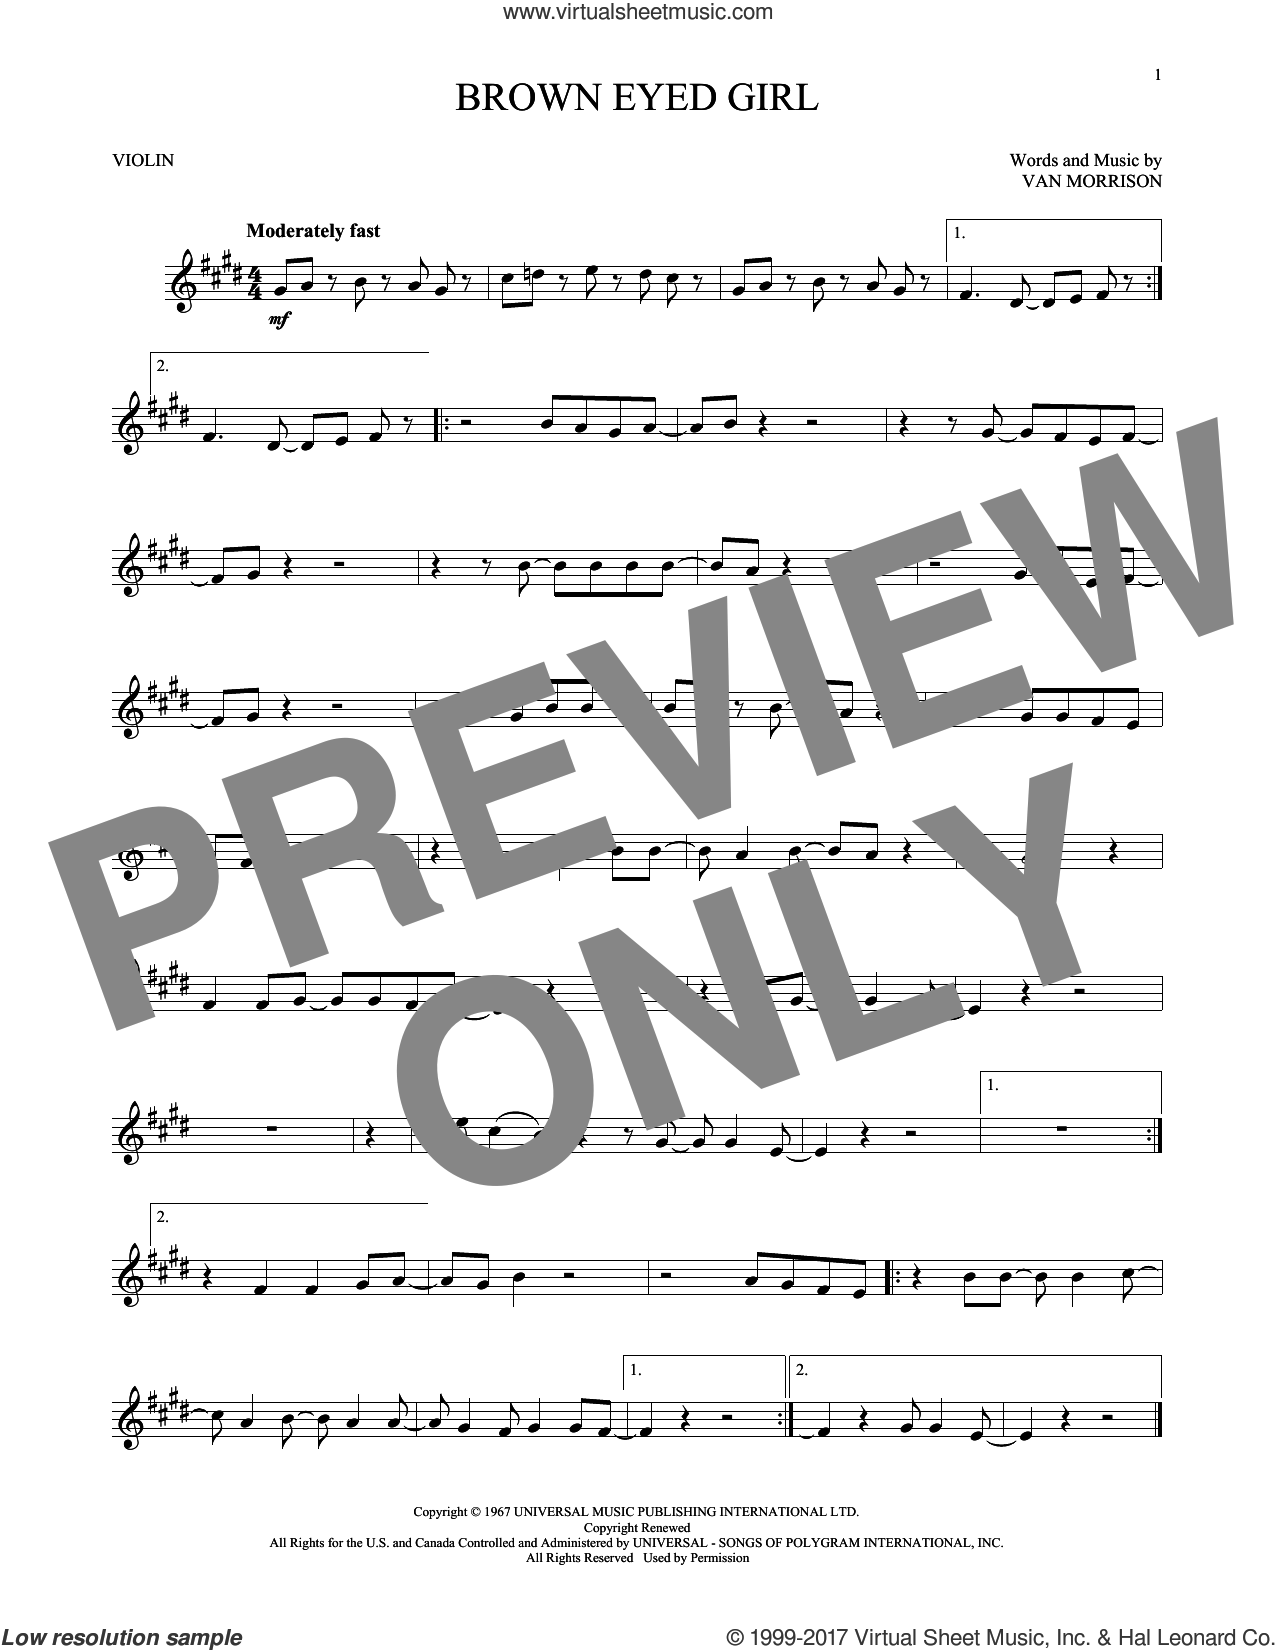 Brown Eyed Girl sheet music for violin solo by Van Morrison, intermediate skill level